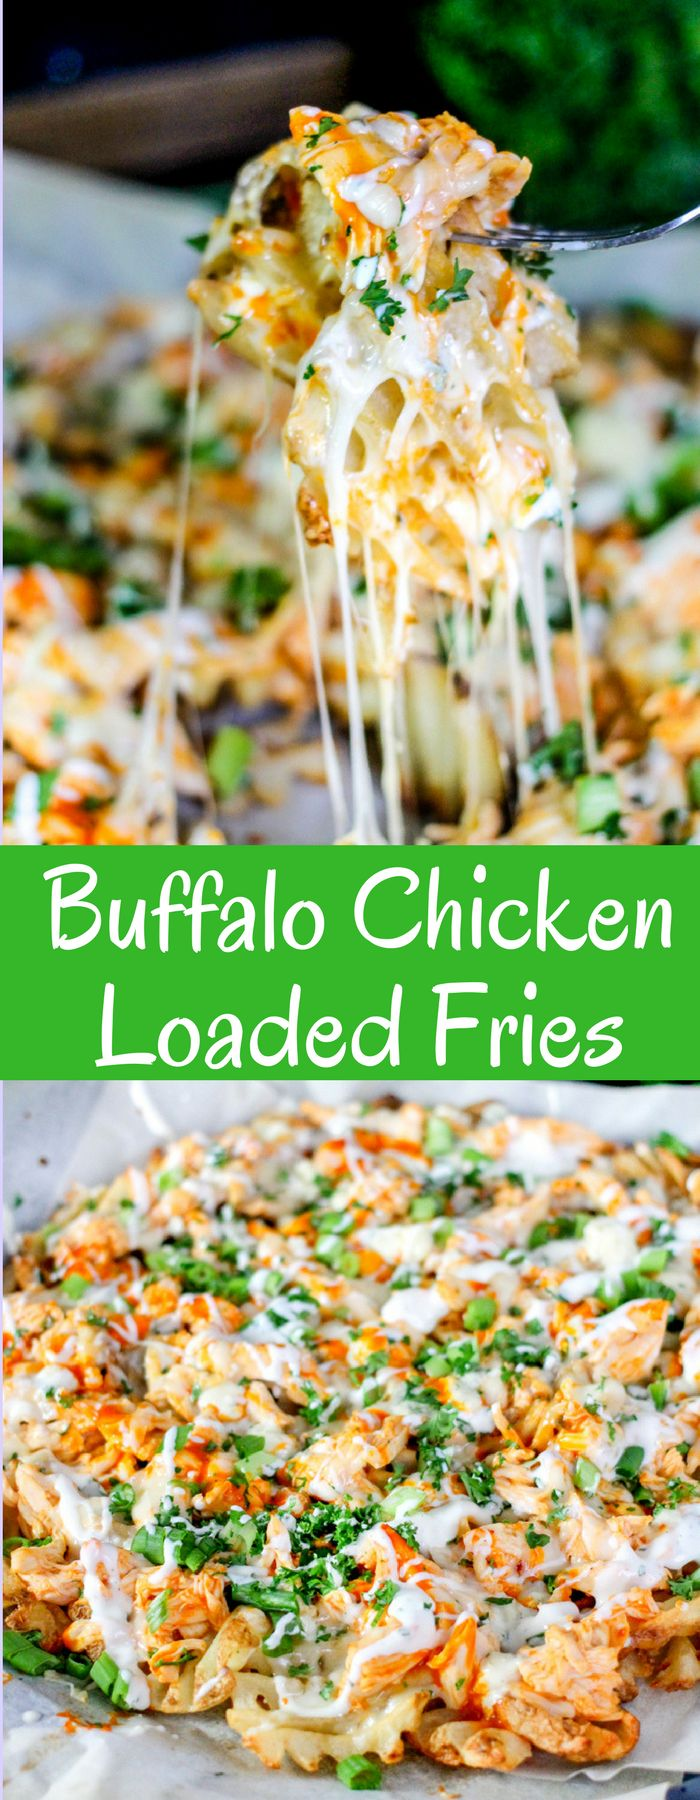 Waffle fries loaded with shredded buffalo chicken, bleu cheese, buffalo sauce, more cheese, and ranch make the most epic Buffalo Chicken Fries EVER!